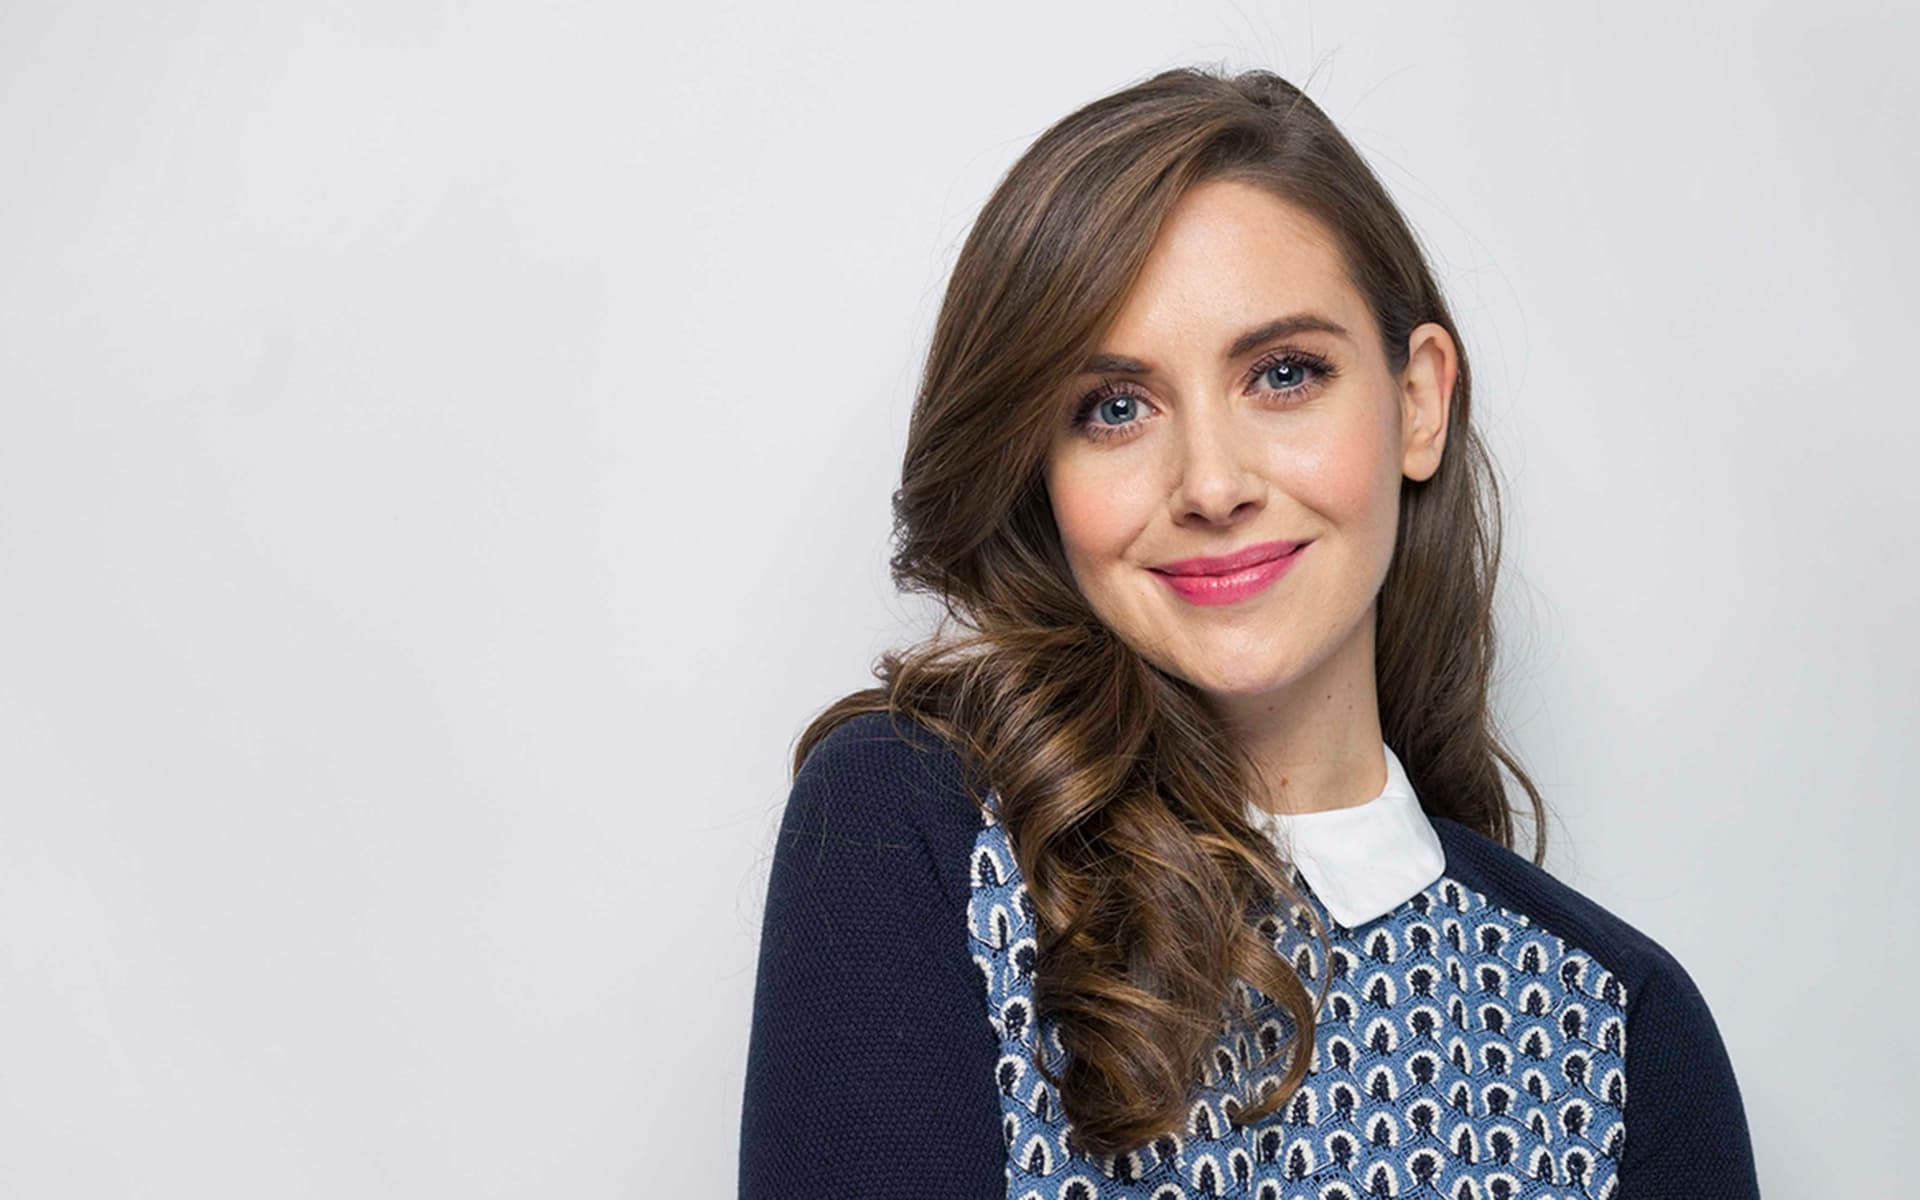 1920x1200 - Alison Brie Wallpapers 2